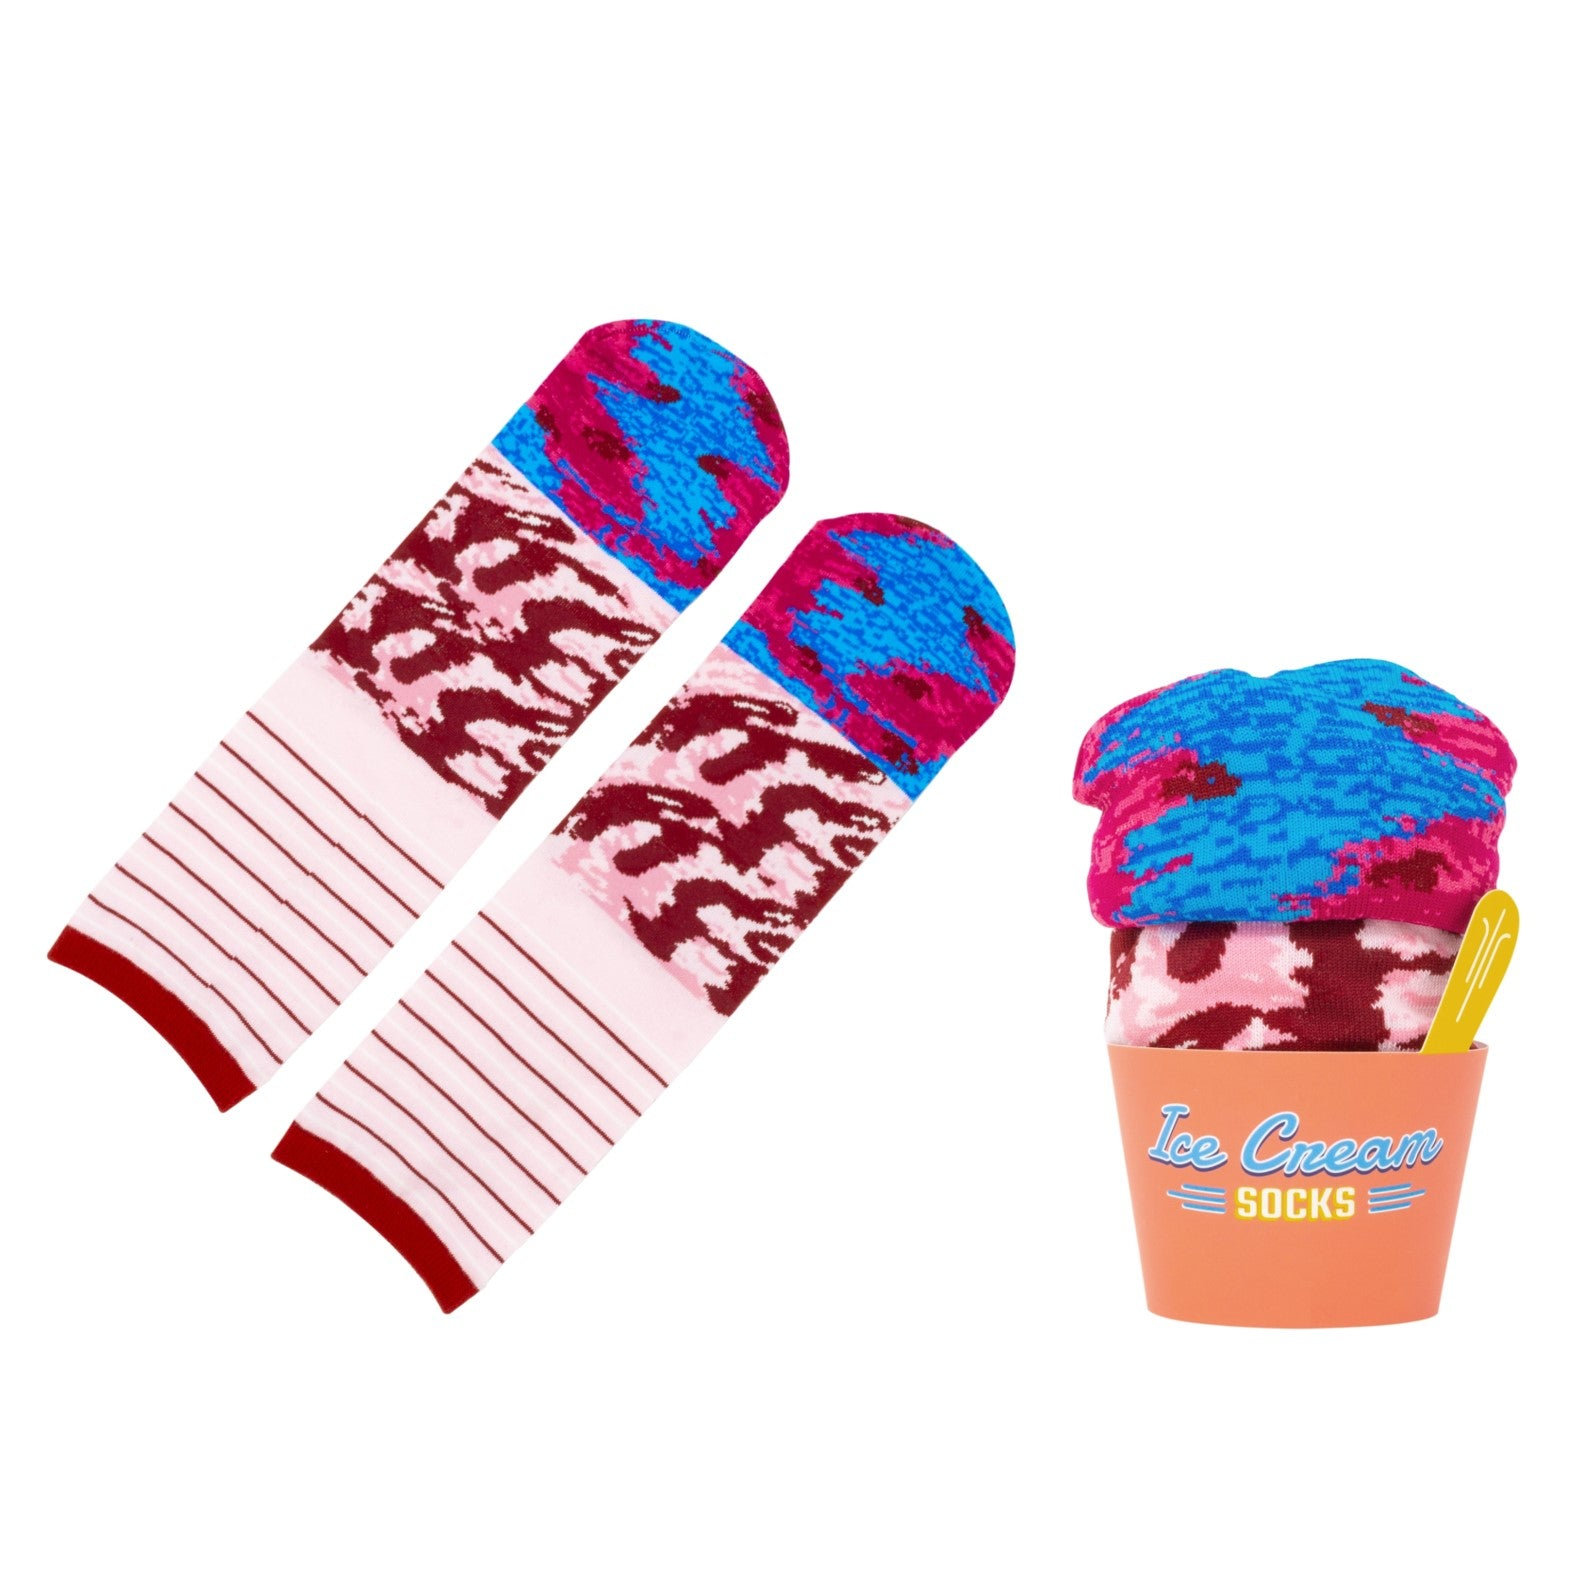 Black Cherry Ice Cream Socks